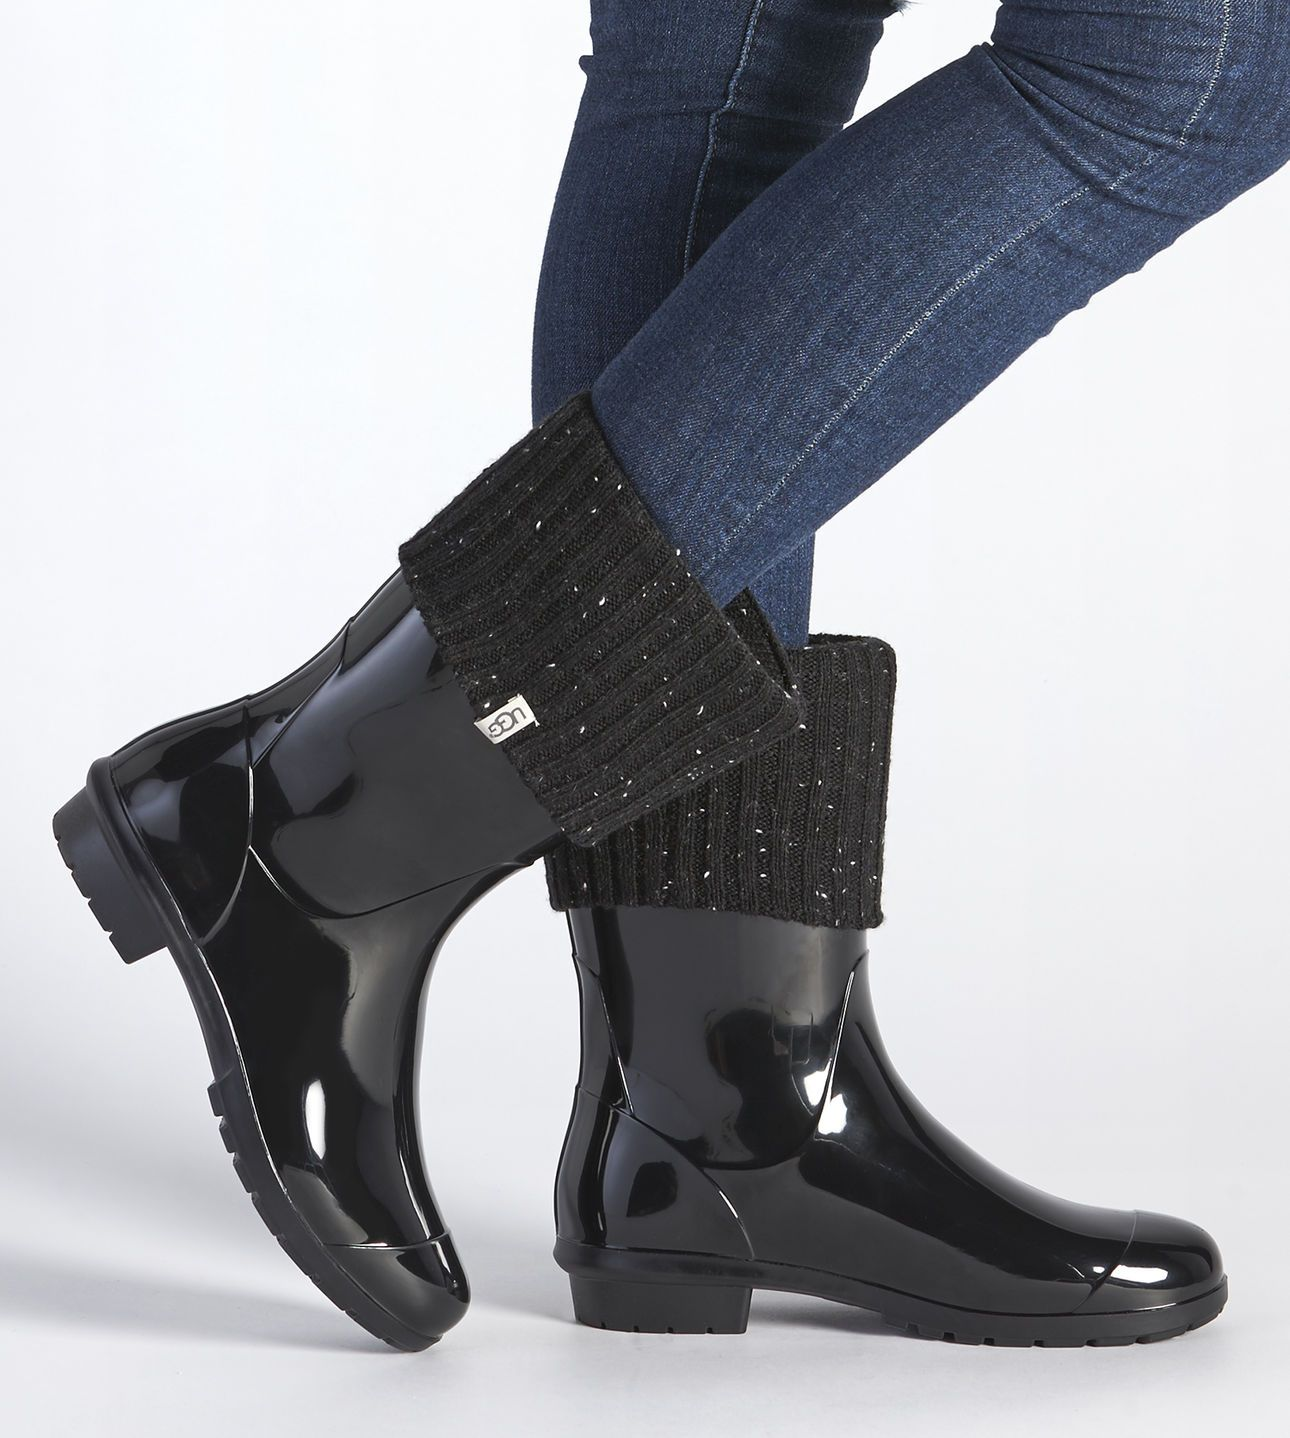 8517d0eb45e Women's Share this product Sienna Short Rainboot Sock in 2019 ...